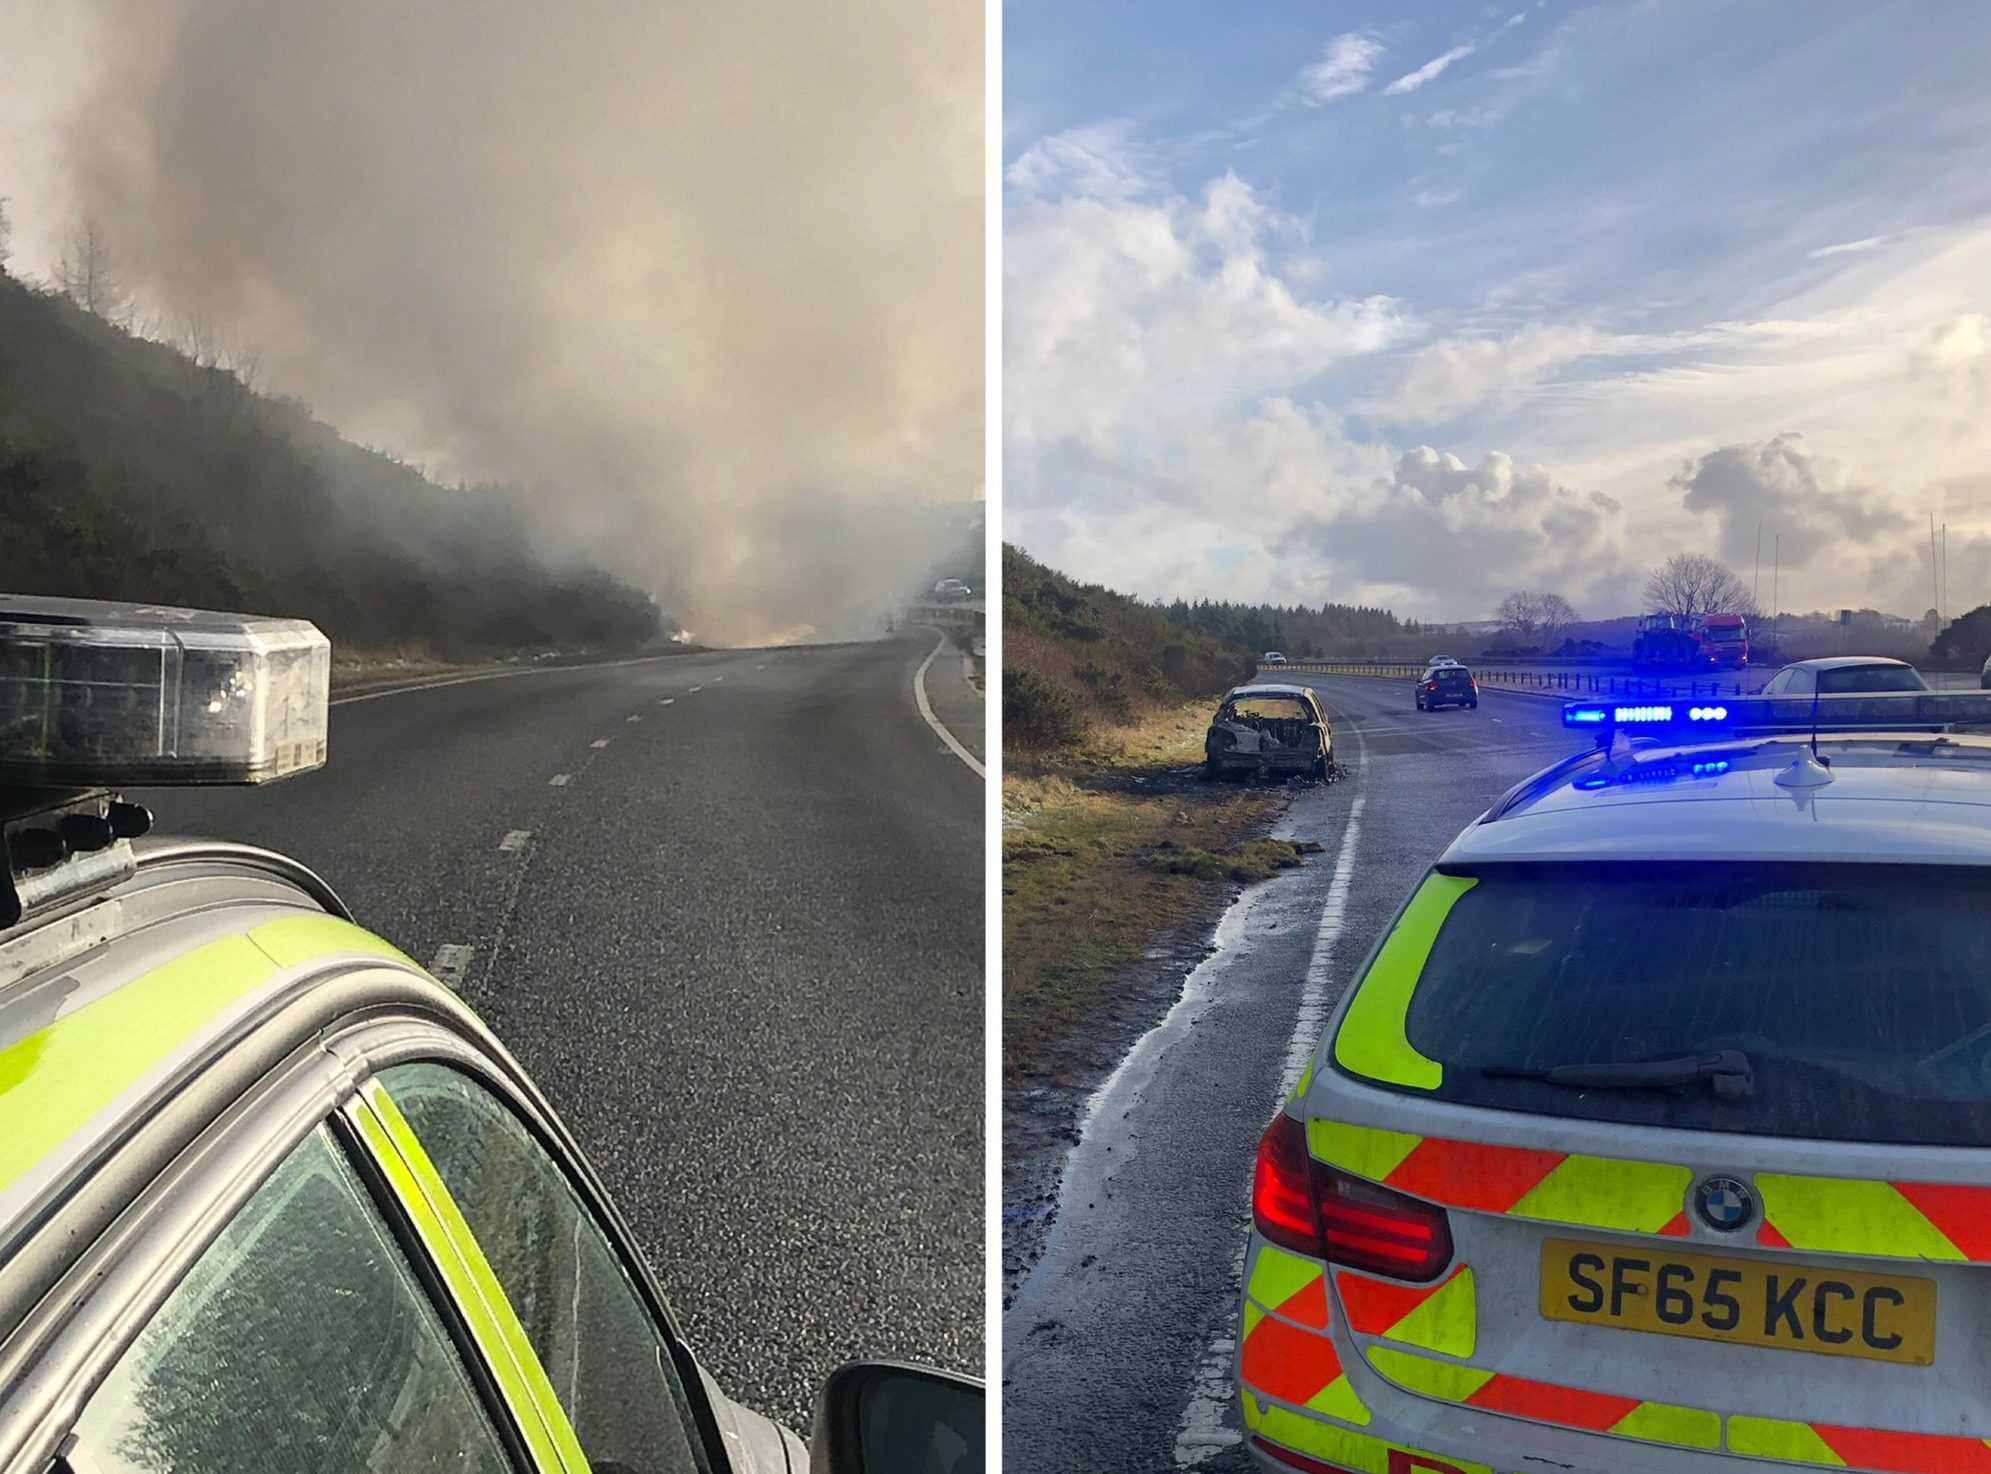 Police Scotland closed the road between Blackburn and Tyrebagger while fire crews extinguished the car fire.